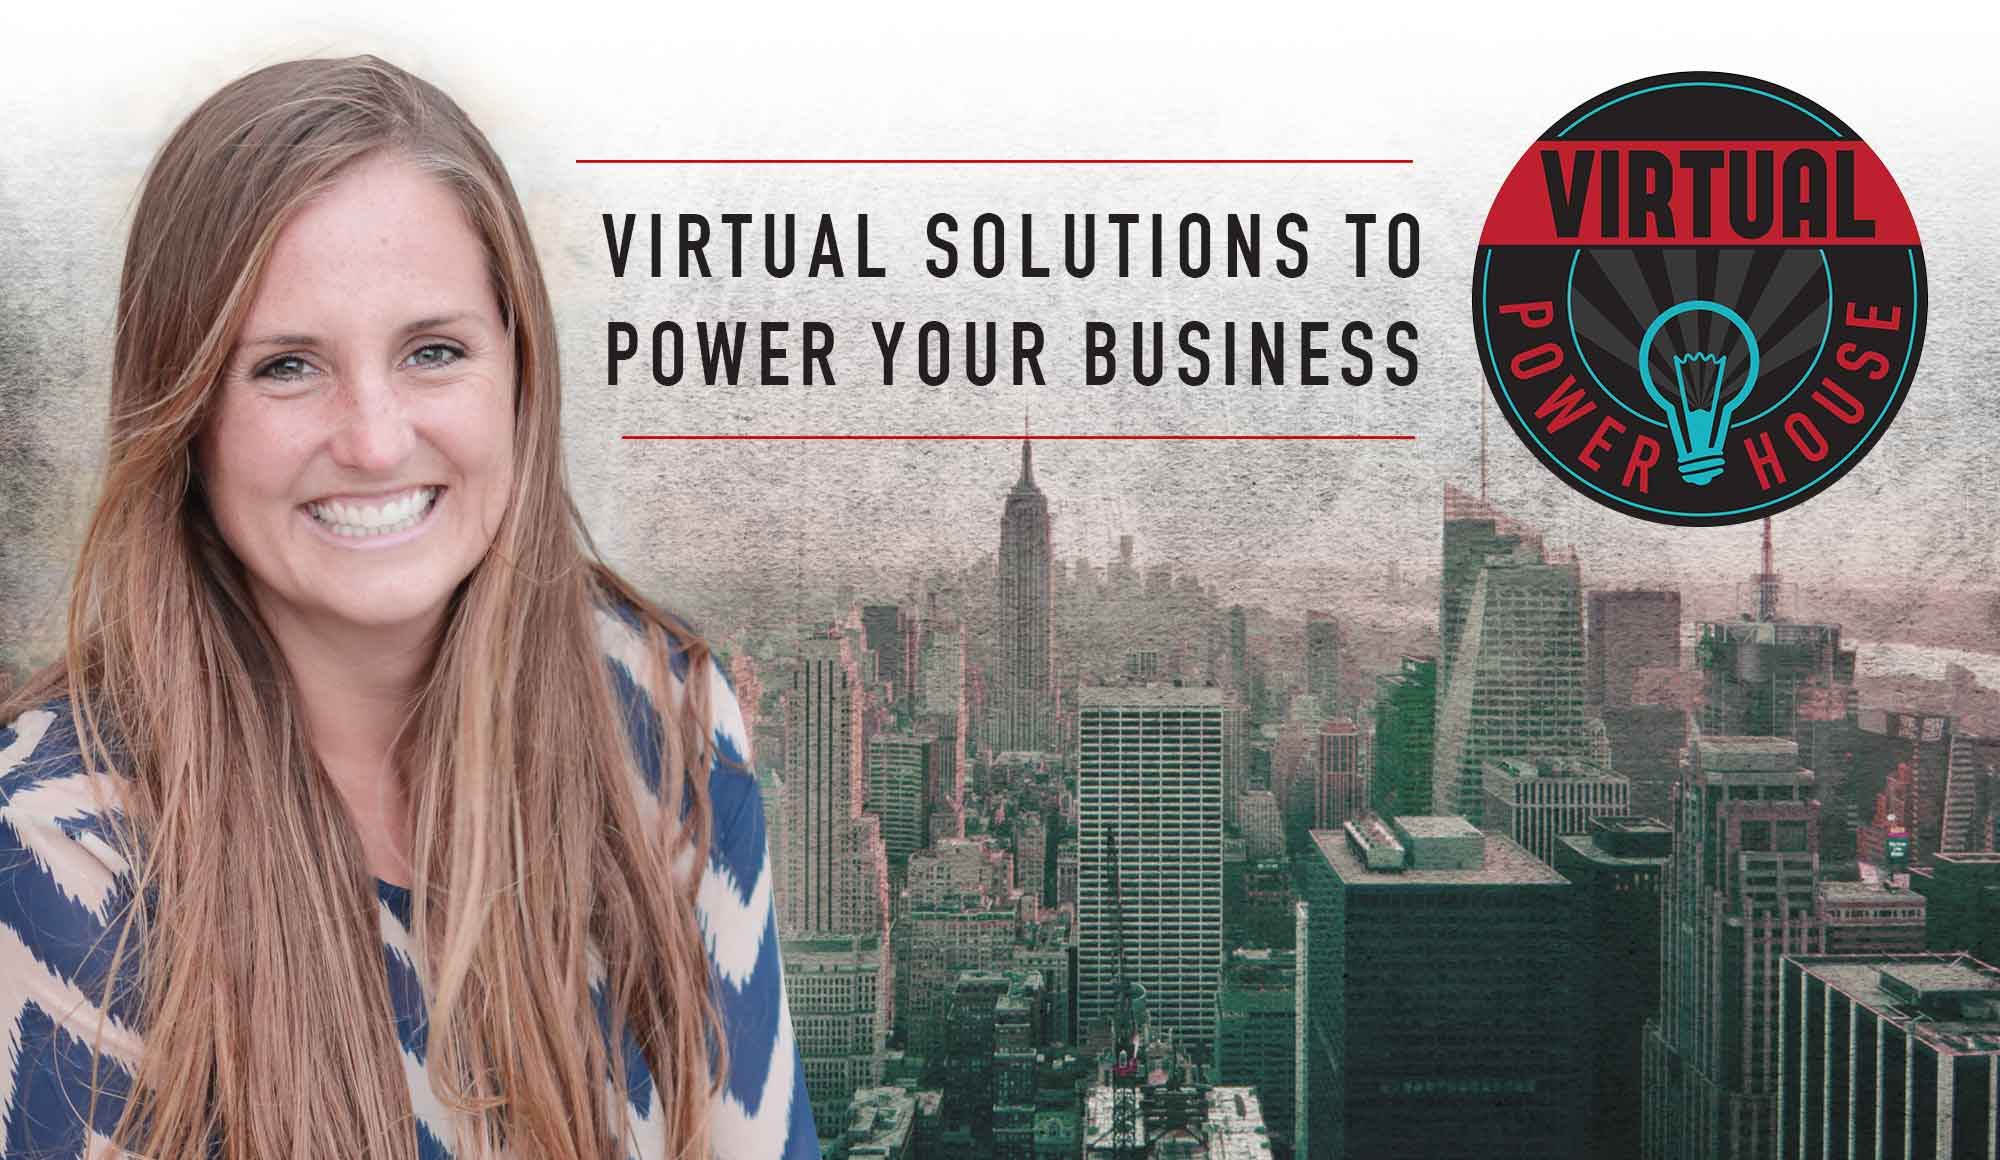 Virtual-powerhouse-header